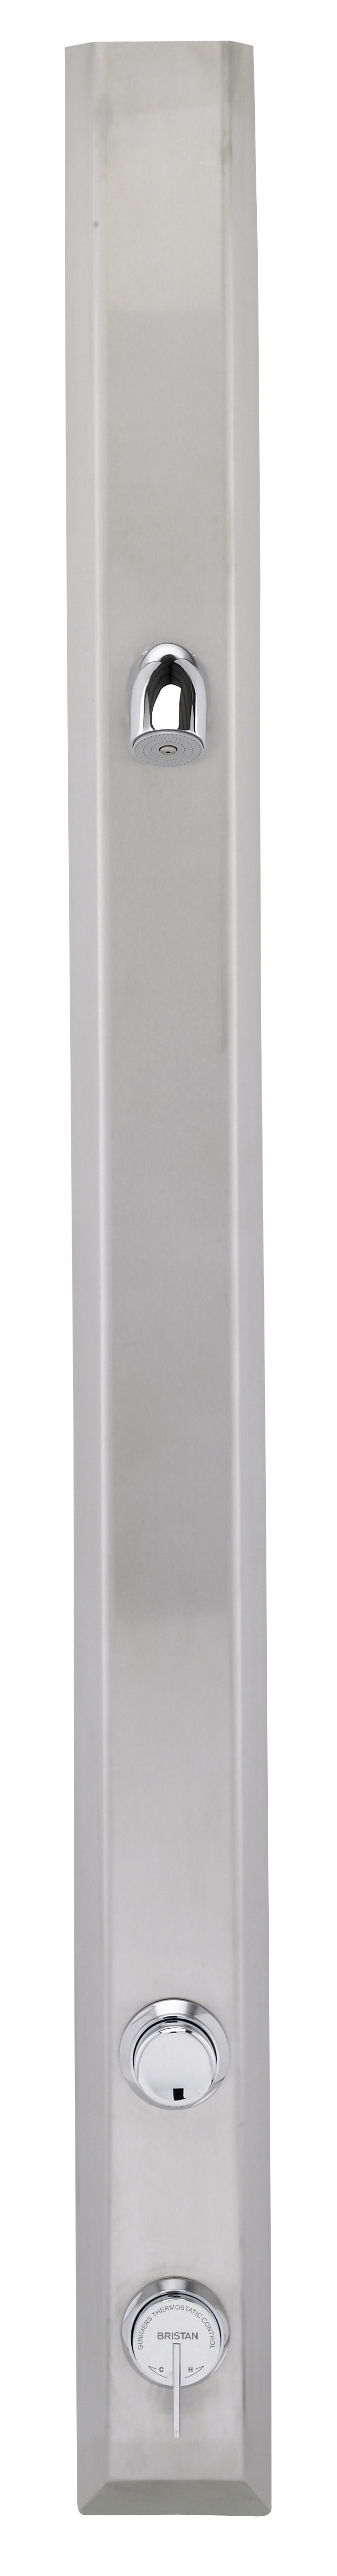 Bristan Timed Flow Thermostatic Shower Panel with Anti Vandal Resistant Shower Head